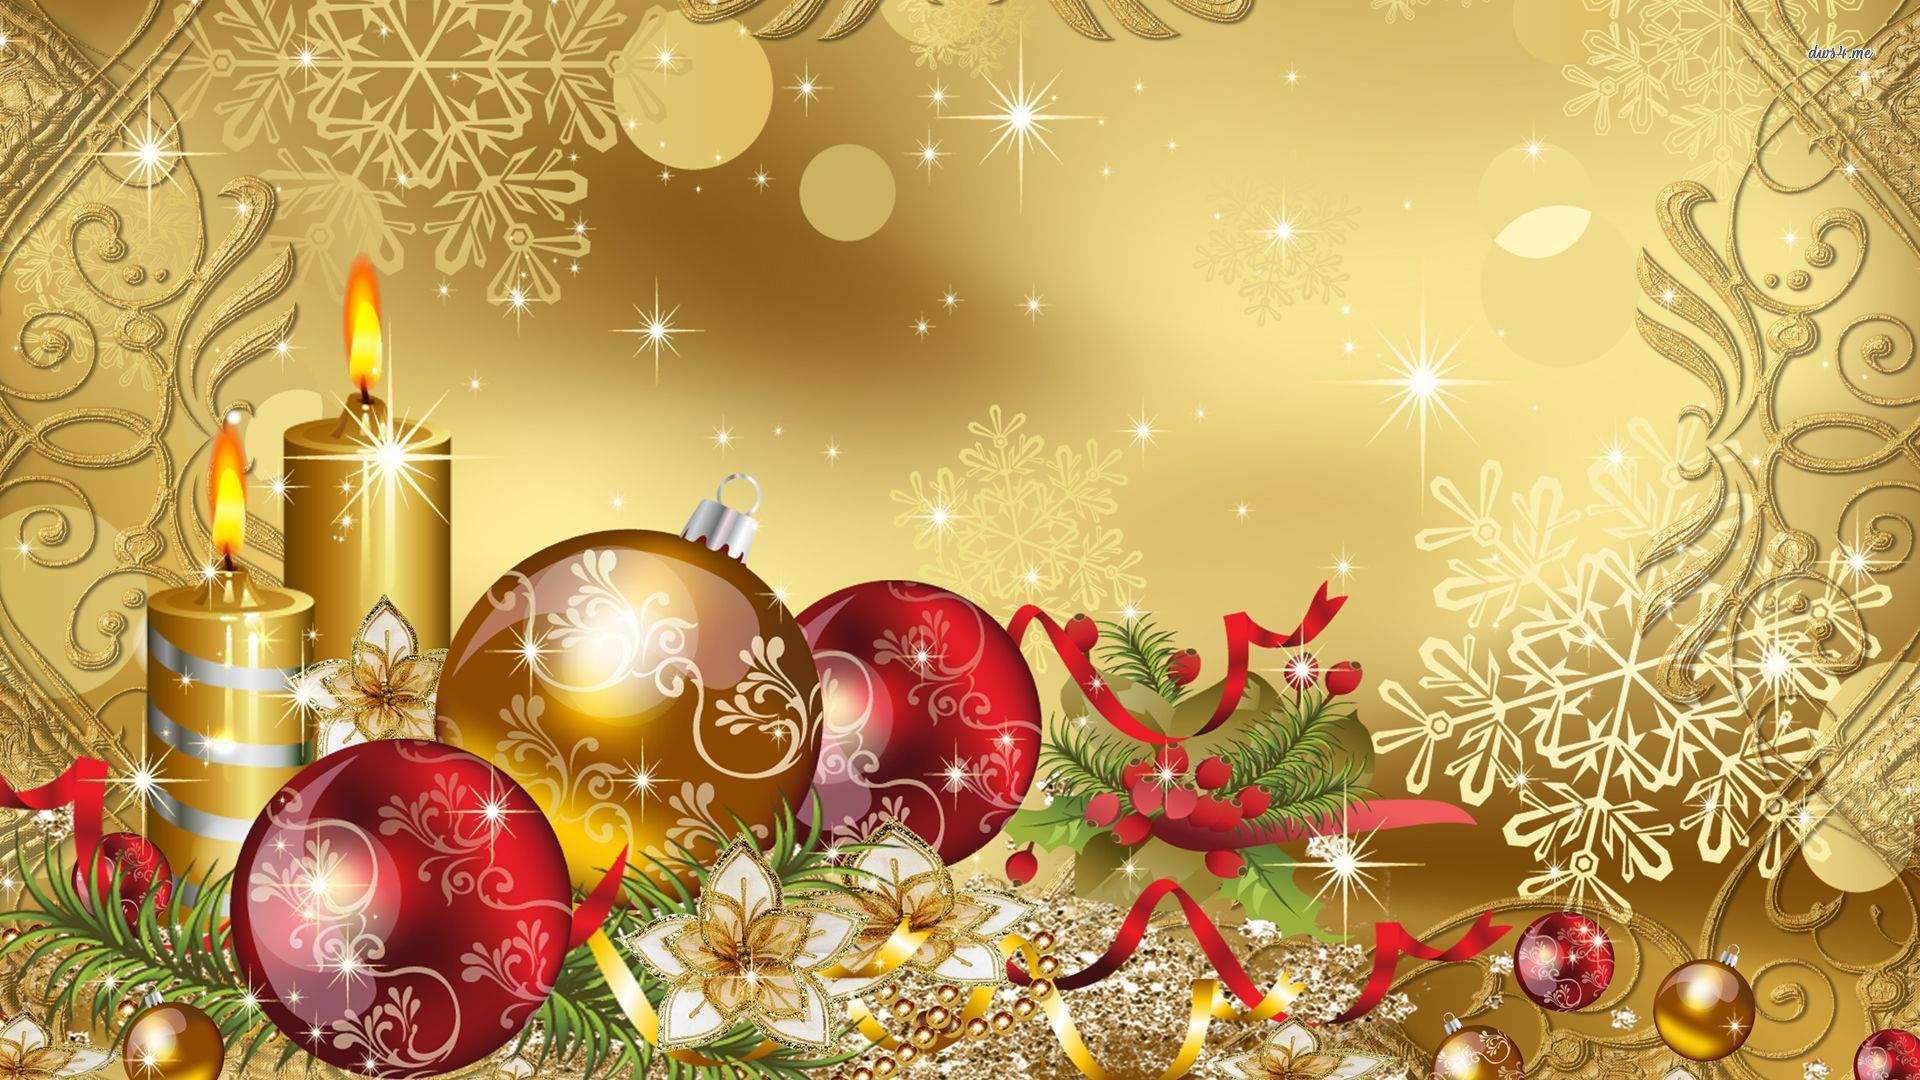 Christmas ornament wallpapers hd pixelstalk net - Free christmas images for desktop wallpaper ...